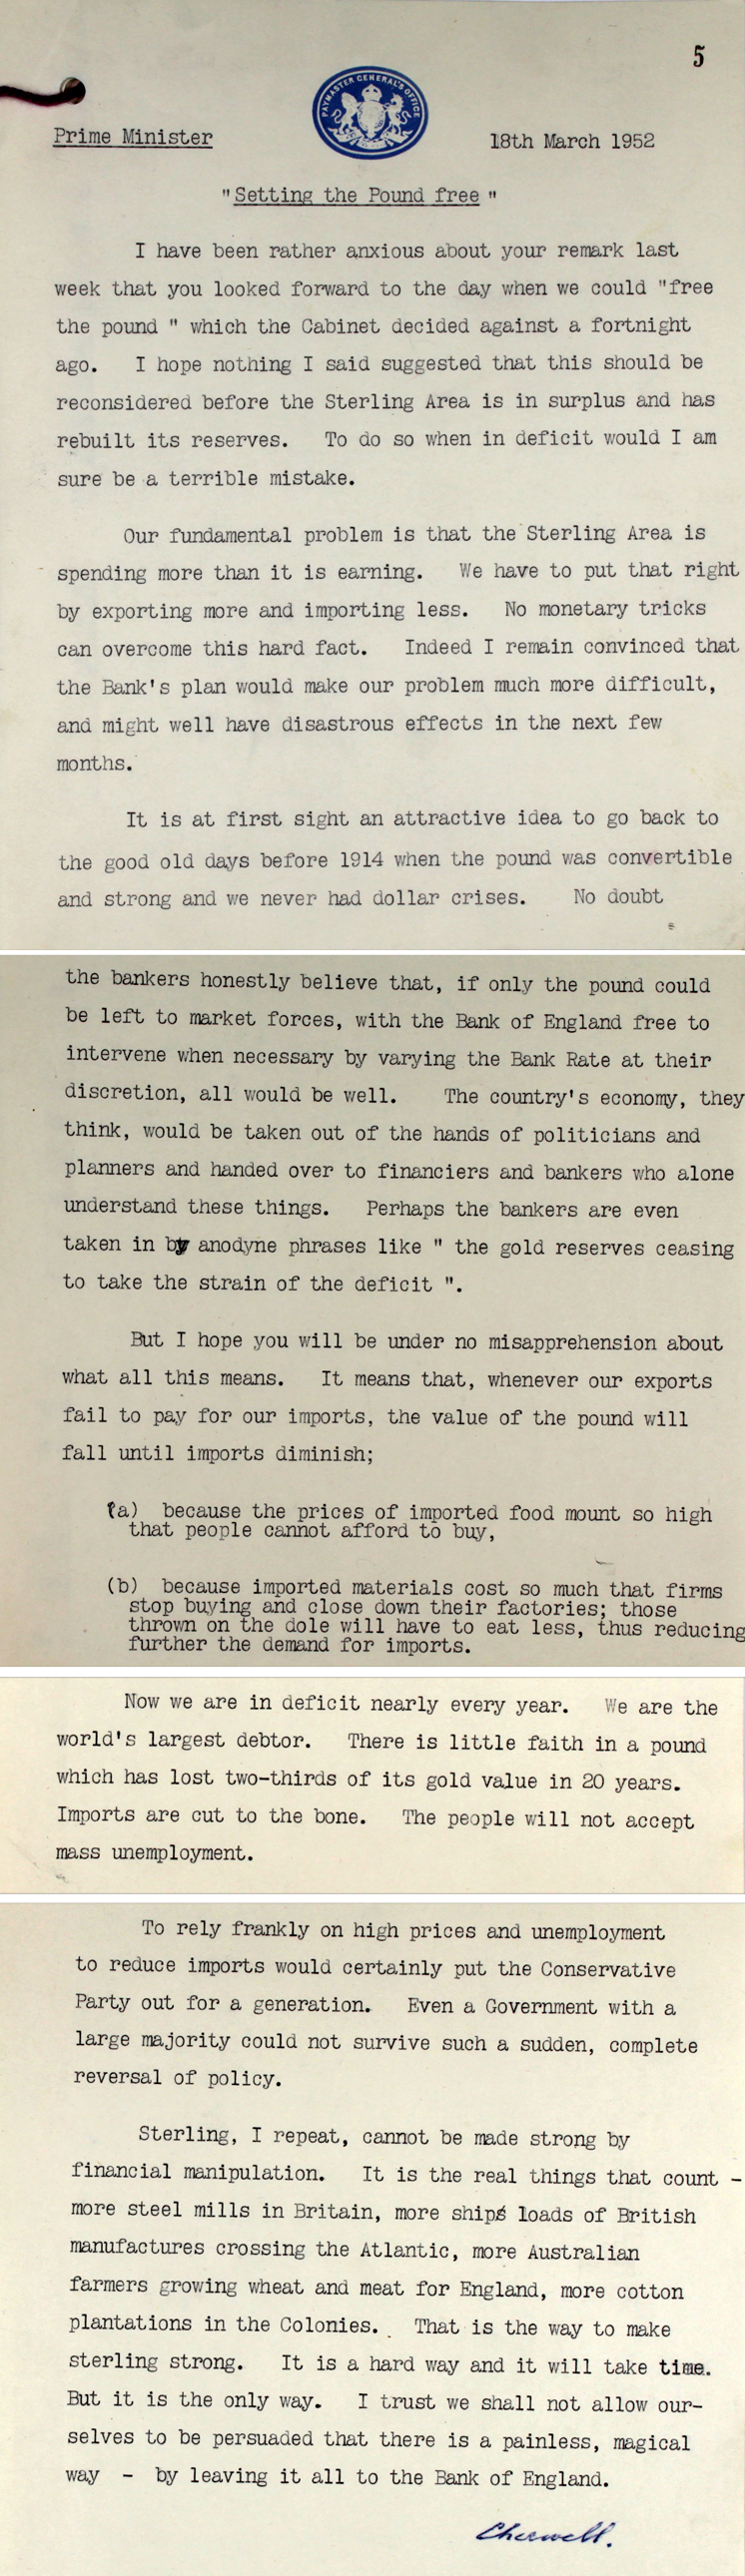 Extracts from a note sent to Prime Minister Winston Churchill by the Paymaster-General Lord Cherwell, 18th March 1952 (PREM 11/137)